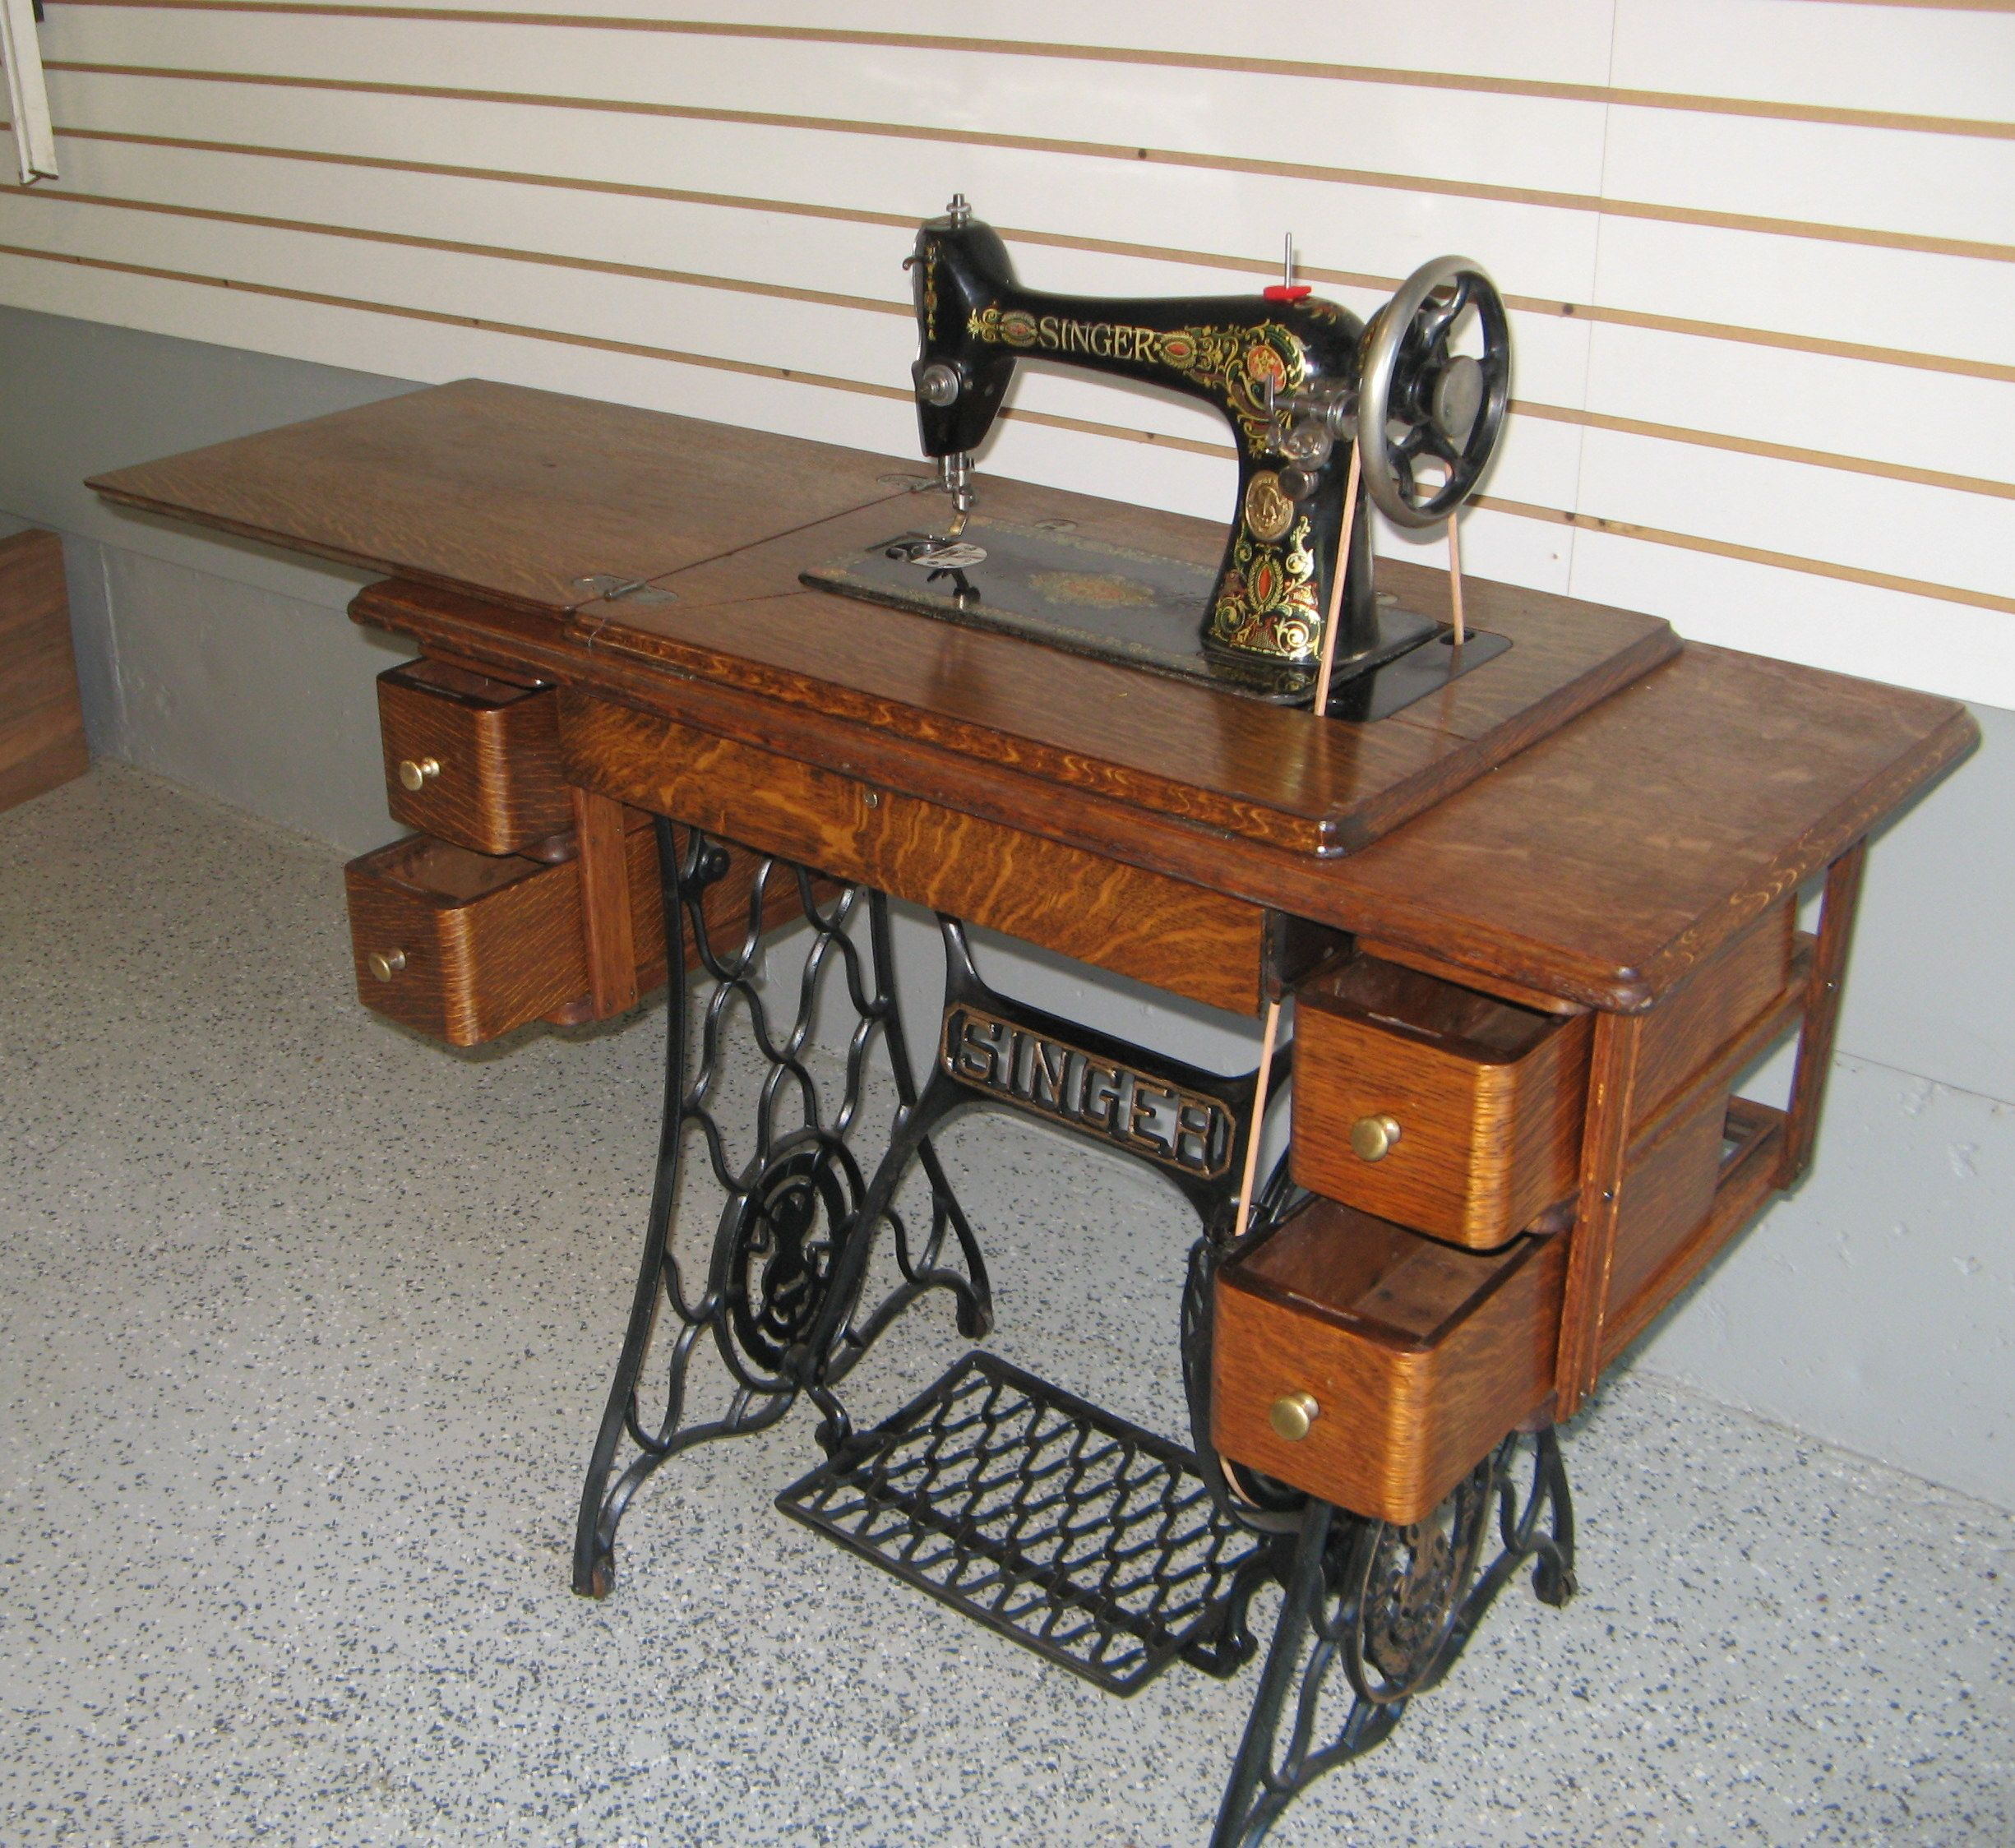 Early 1900s Singer Treadle Sewing Machine with 5 Drawer Tiger Oak